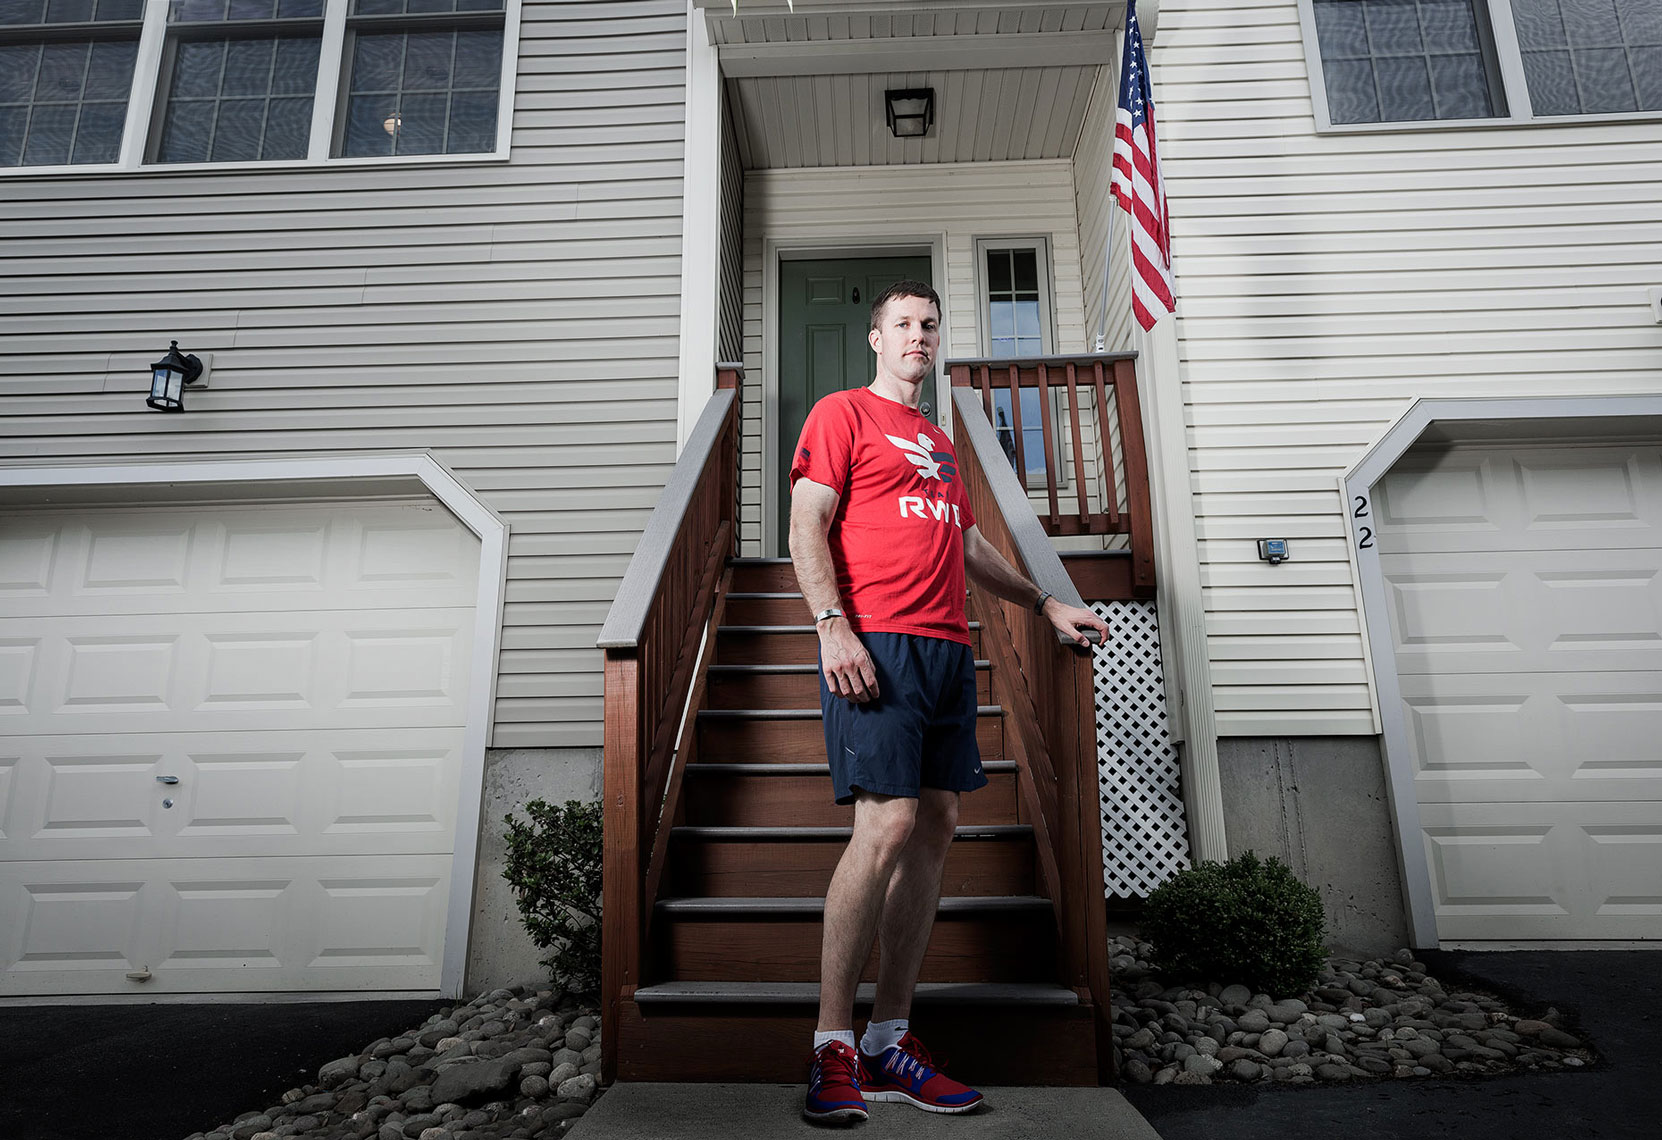 Neighbors: Veteran Advocate